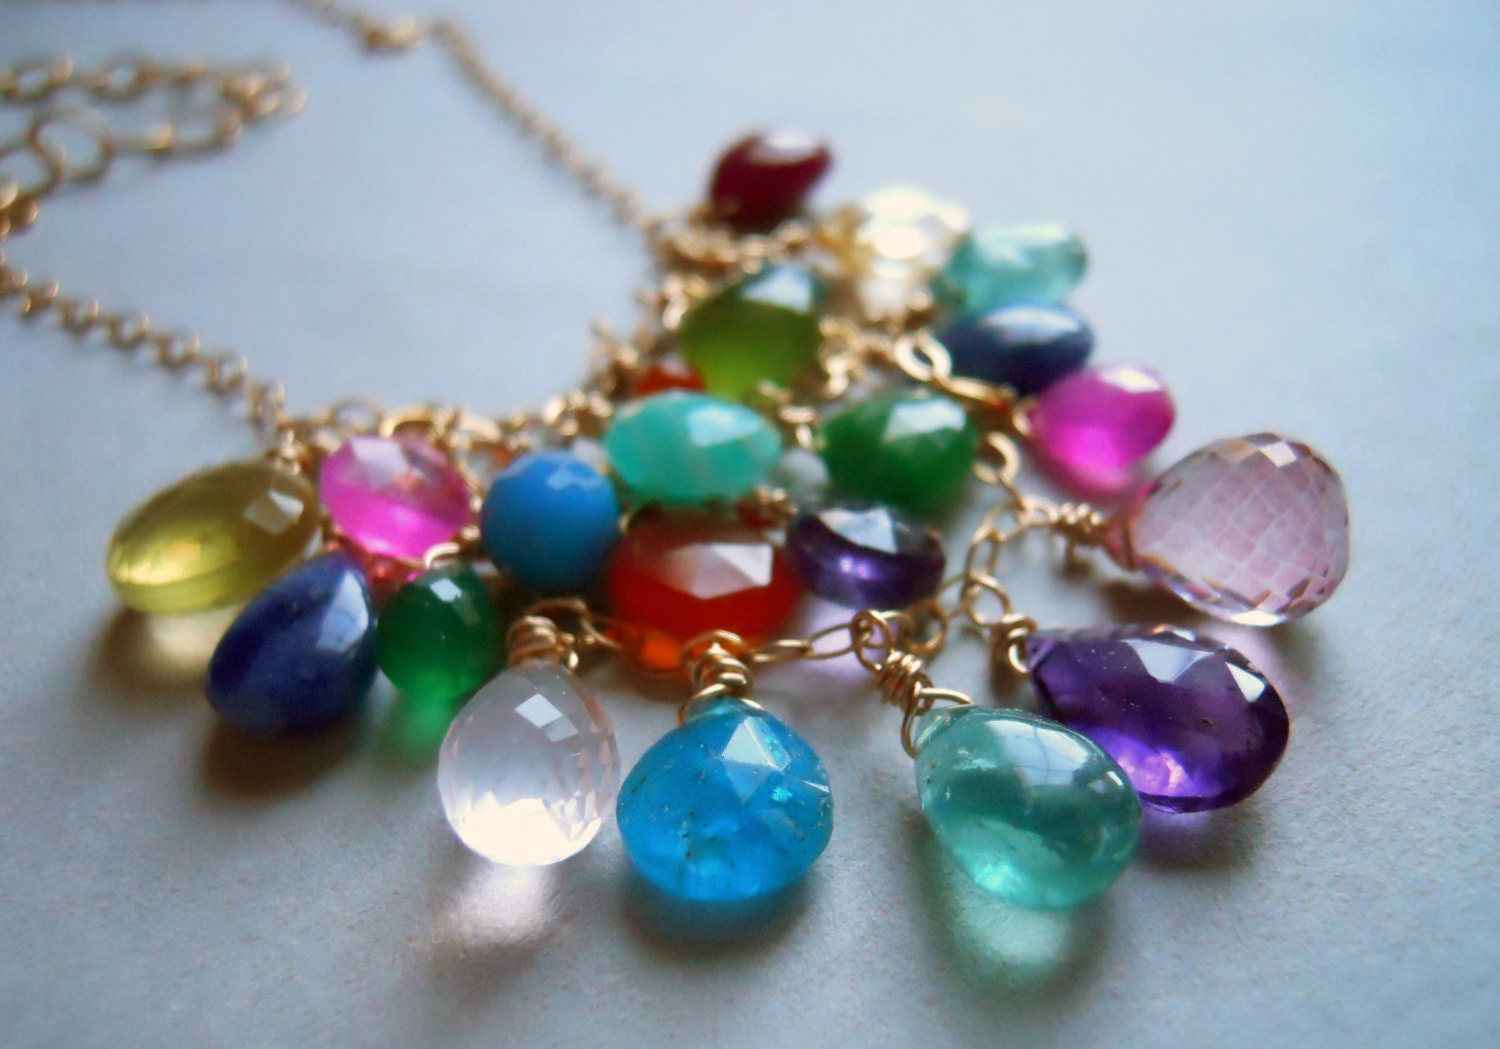 Go to Town Multi Gem Colorful Web BIB necklace - $260.00 USD